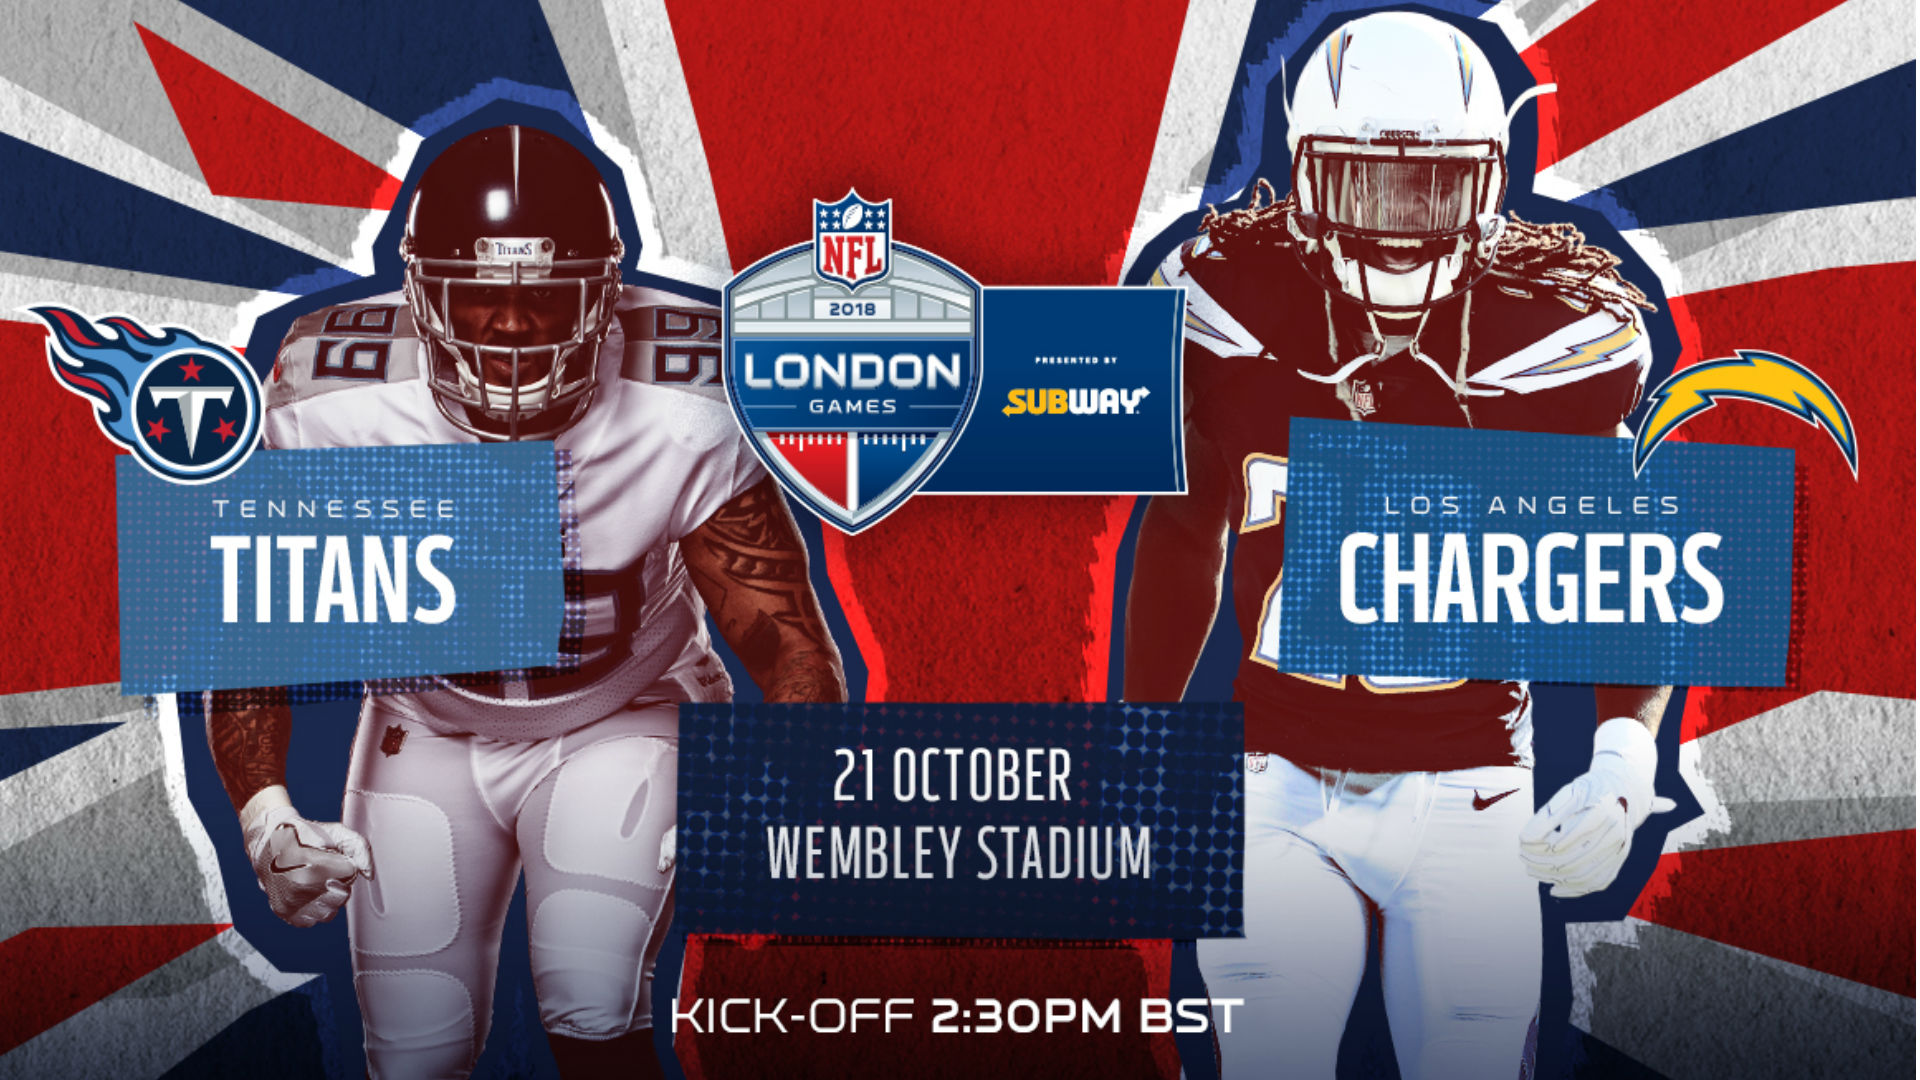 31d1bf1da NFL London Games 2018  Tennessee Titans v Los Angeles Chargers at Wembley  Stadium